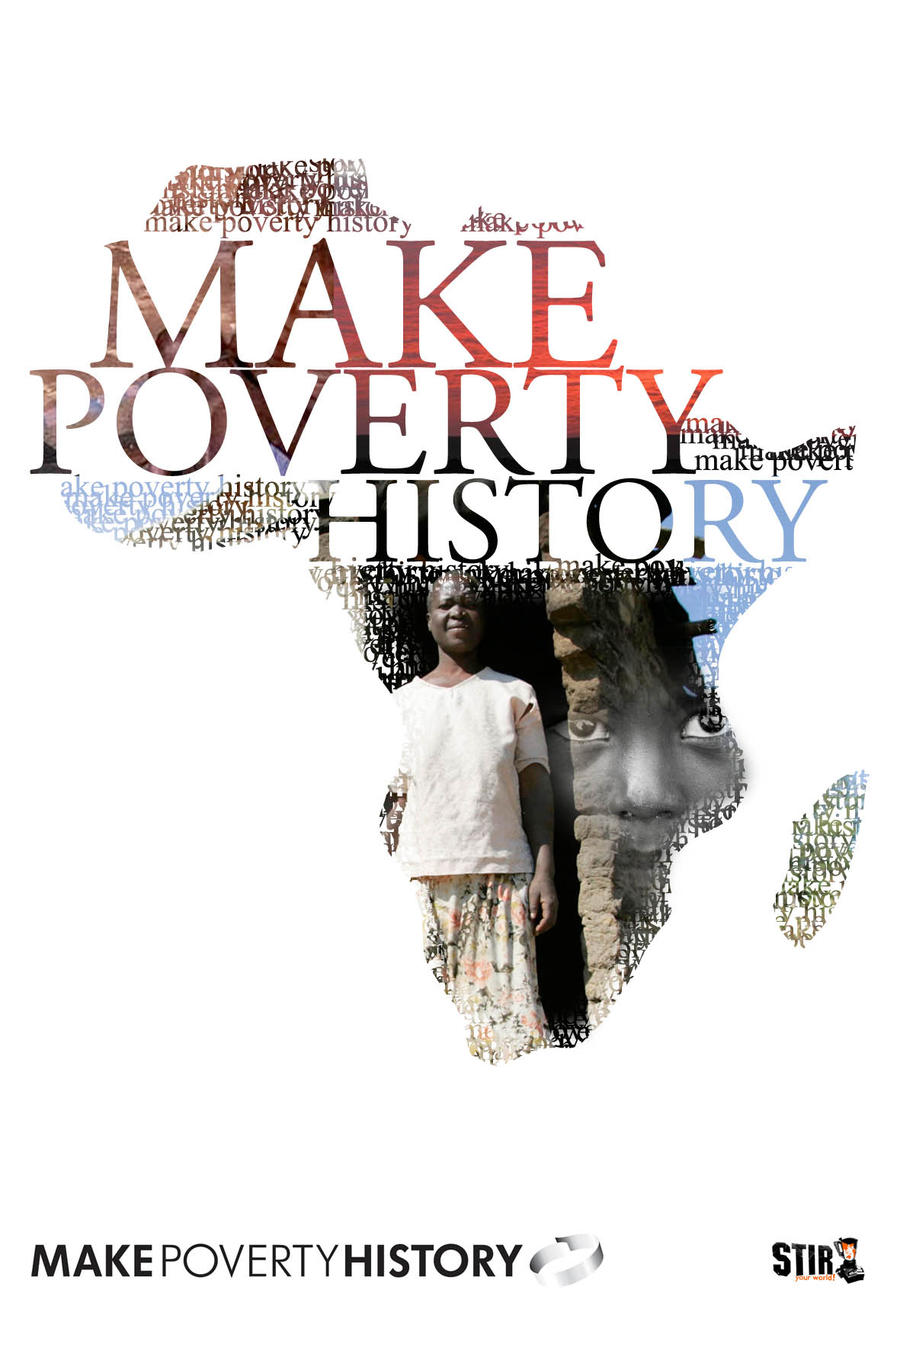 make poverty history essay The most significant lesson the film can offer is that there have been many different types of seemingly unavoidable poverty throughout history but today, for the first time, it is finally possible to make poverty, history.